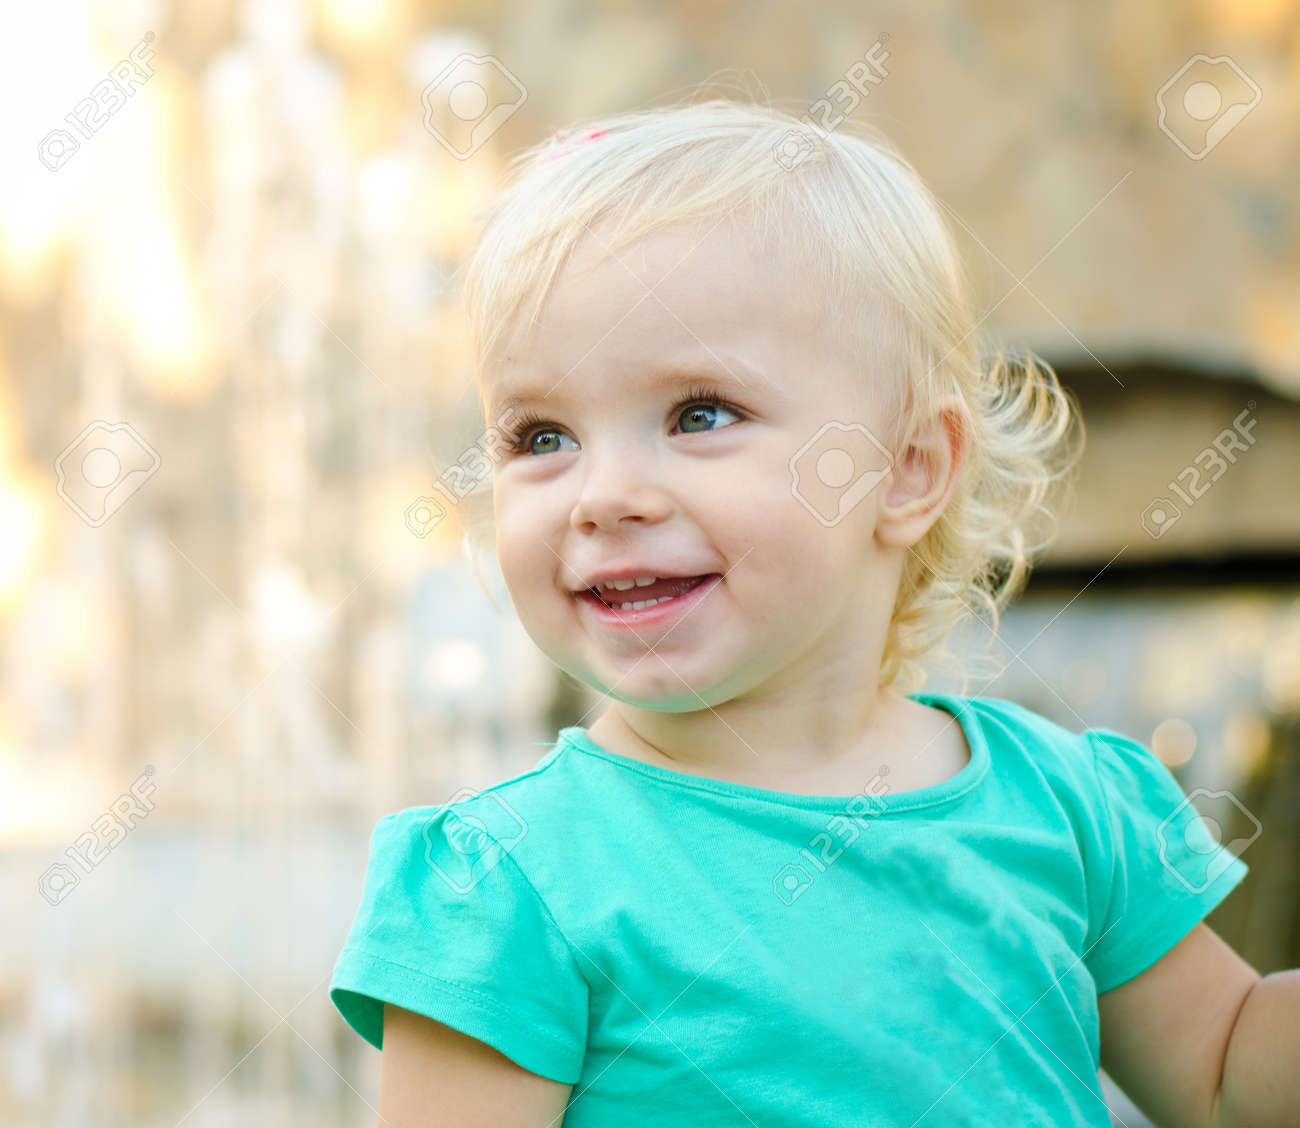 Emotional Little Girl with funny Face Expression - 25546141